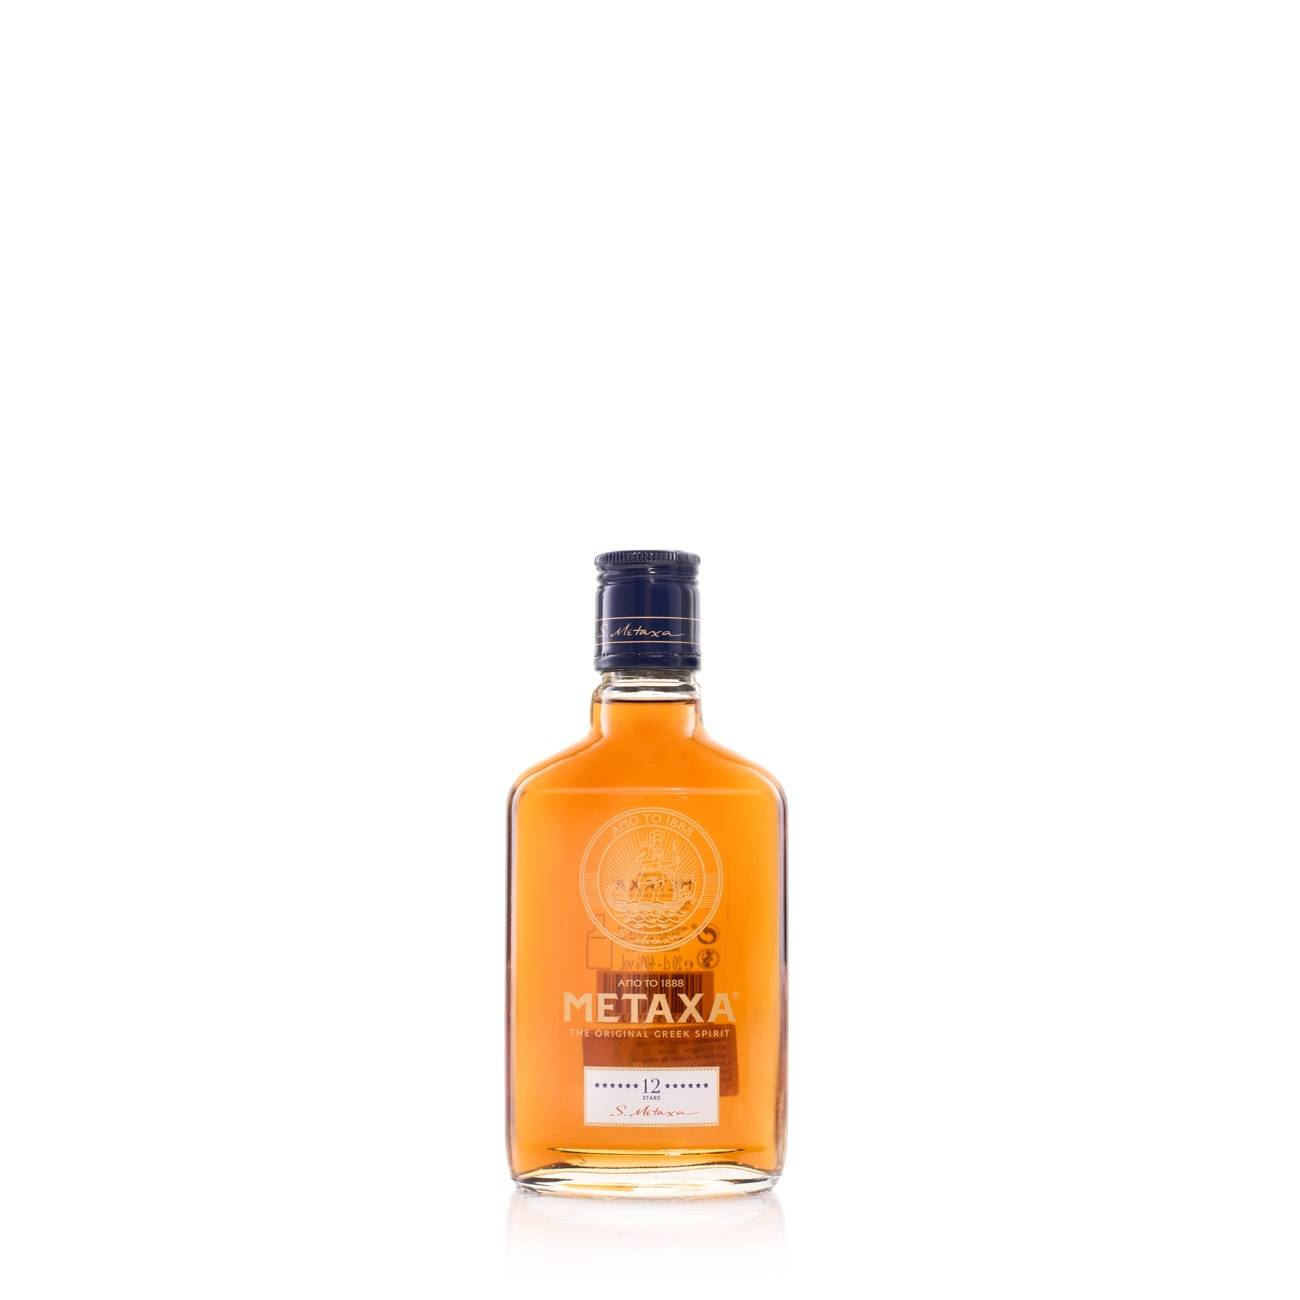 12* 200 Ml de la Metaxa